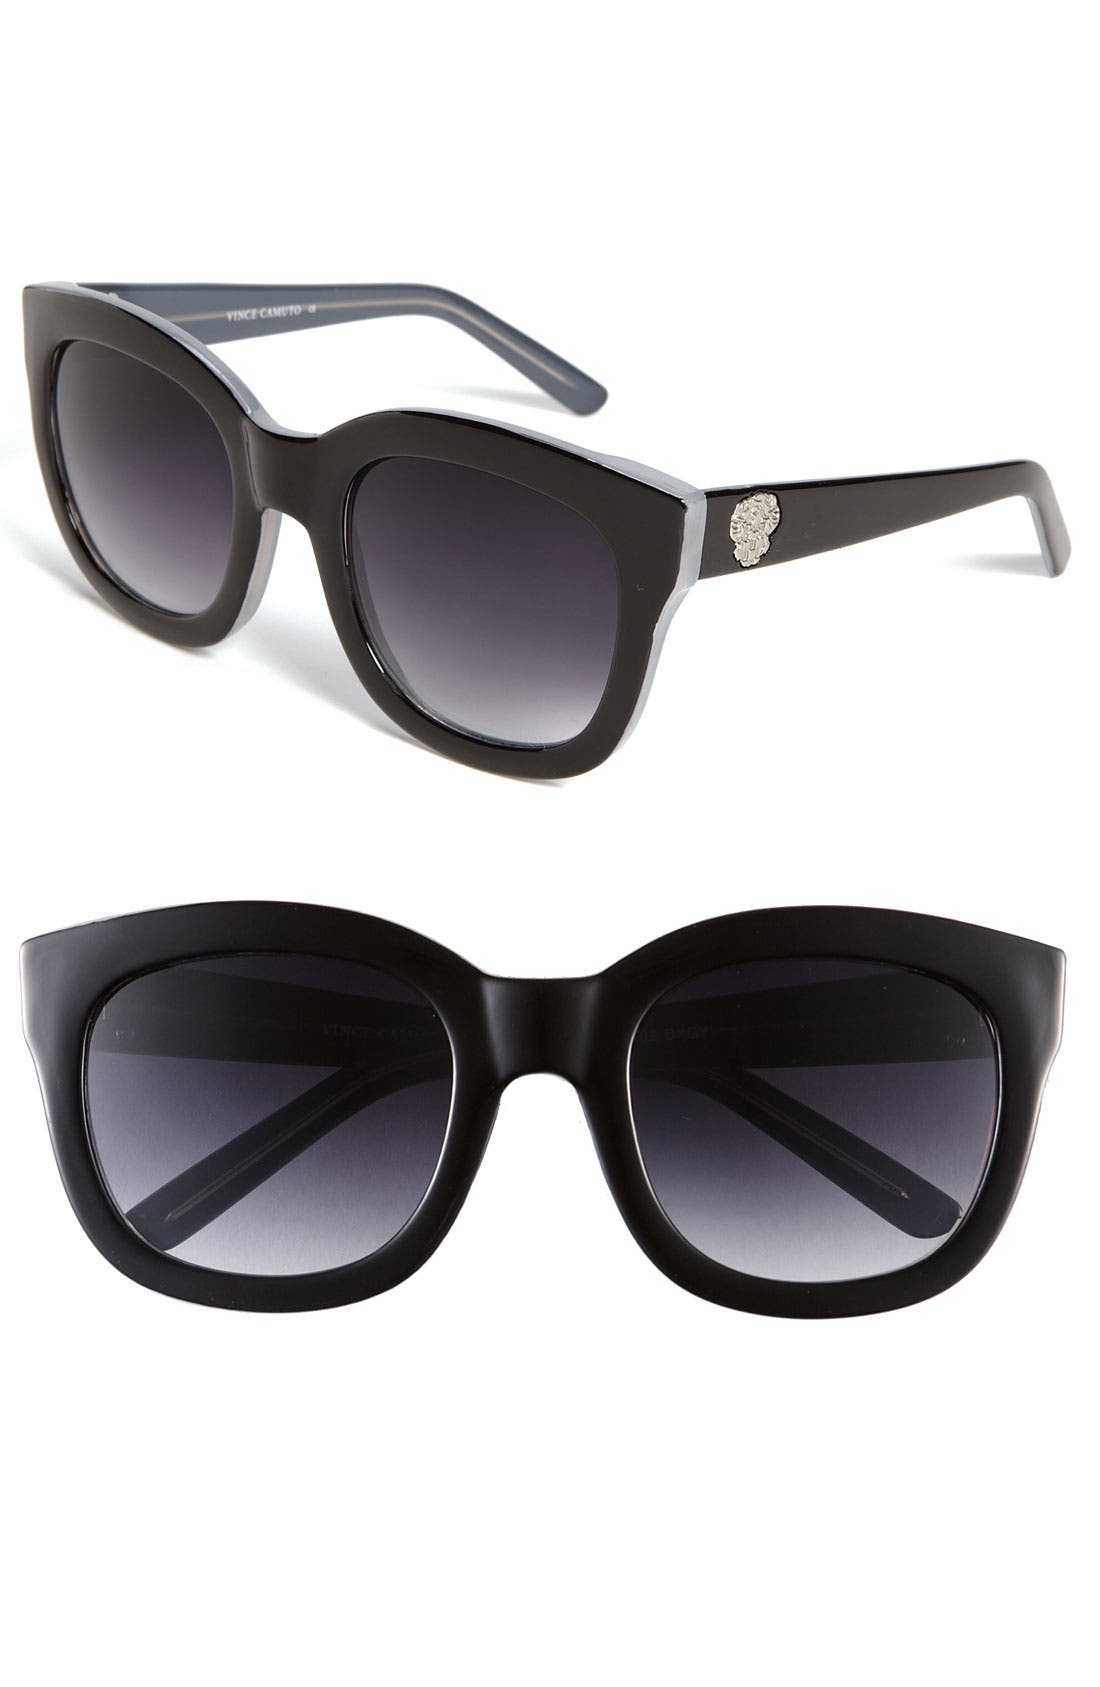 VINCE CAMUTO, 54mm Oversized Cat Eye Sunglasses, Main thumbnail 1, color, 001